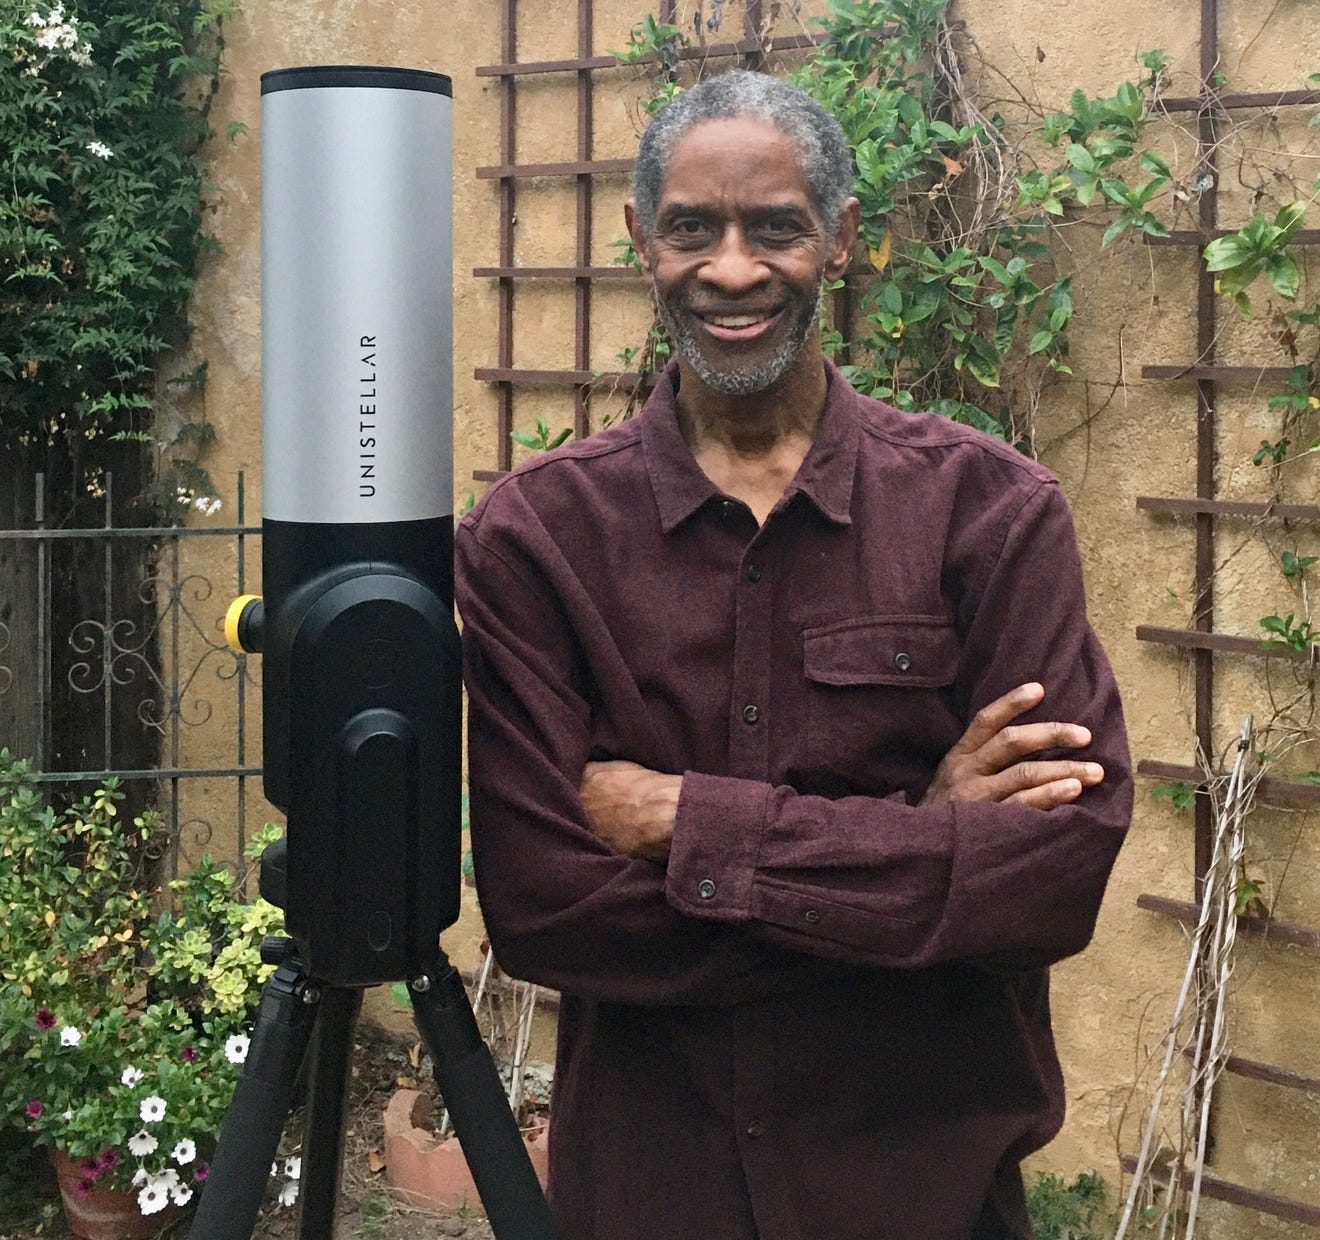 Tim Russ from Star Trek: Voyager poses with his backyard telescope